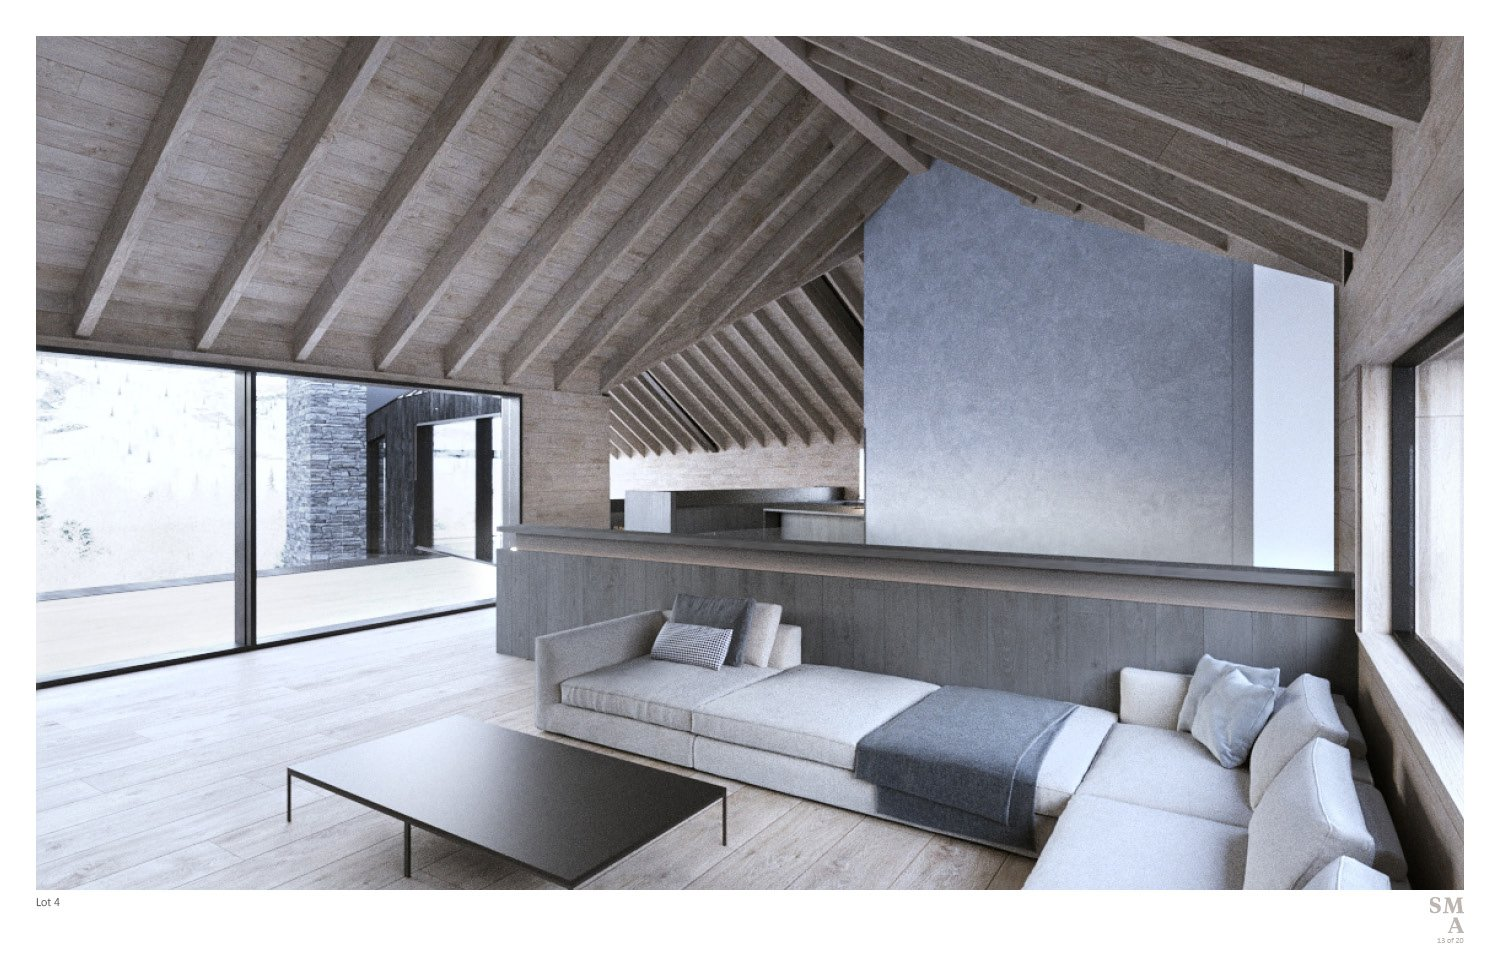 """Lot 4 - Interior view of the intersecting point between the west and east volumes that slips past each other, creating an """"imperfect"""" chevron with gabled volumes. SMA Design Team & Consultants}"""